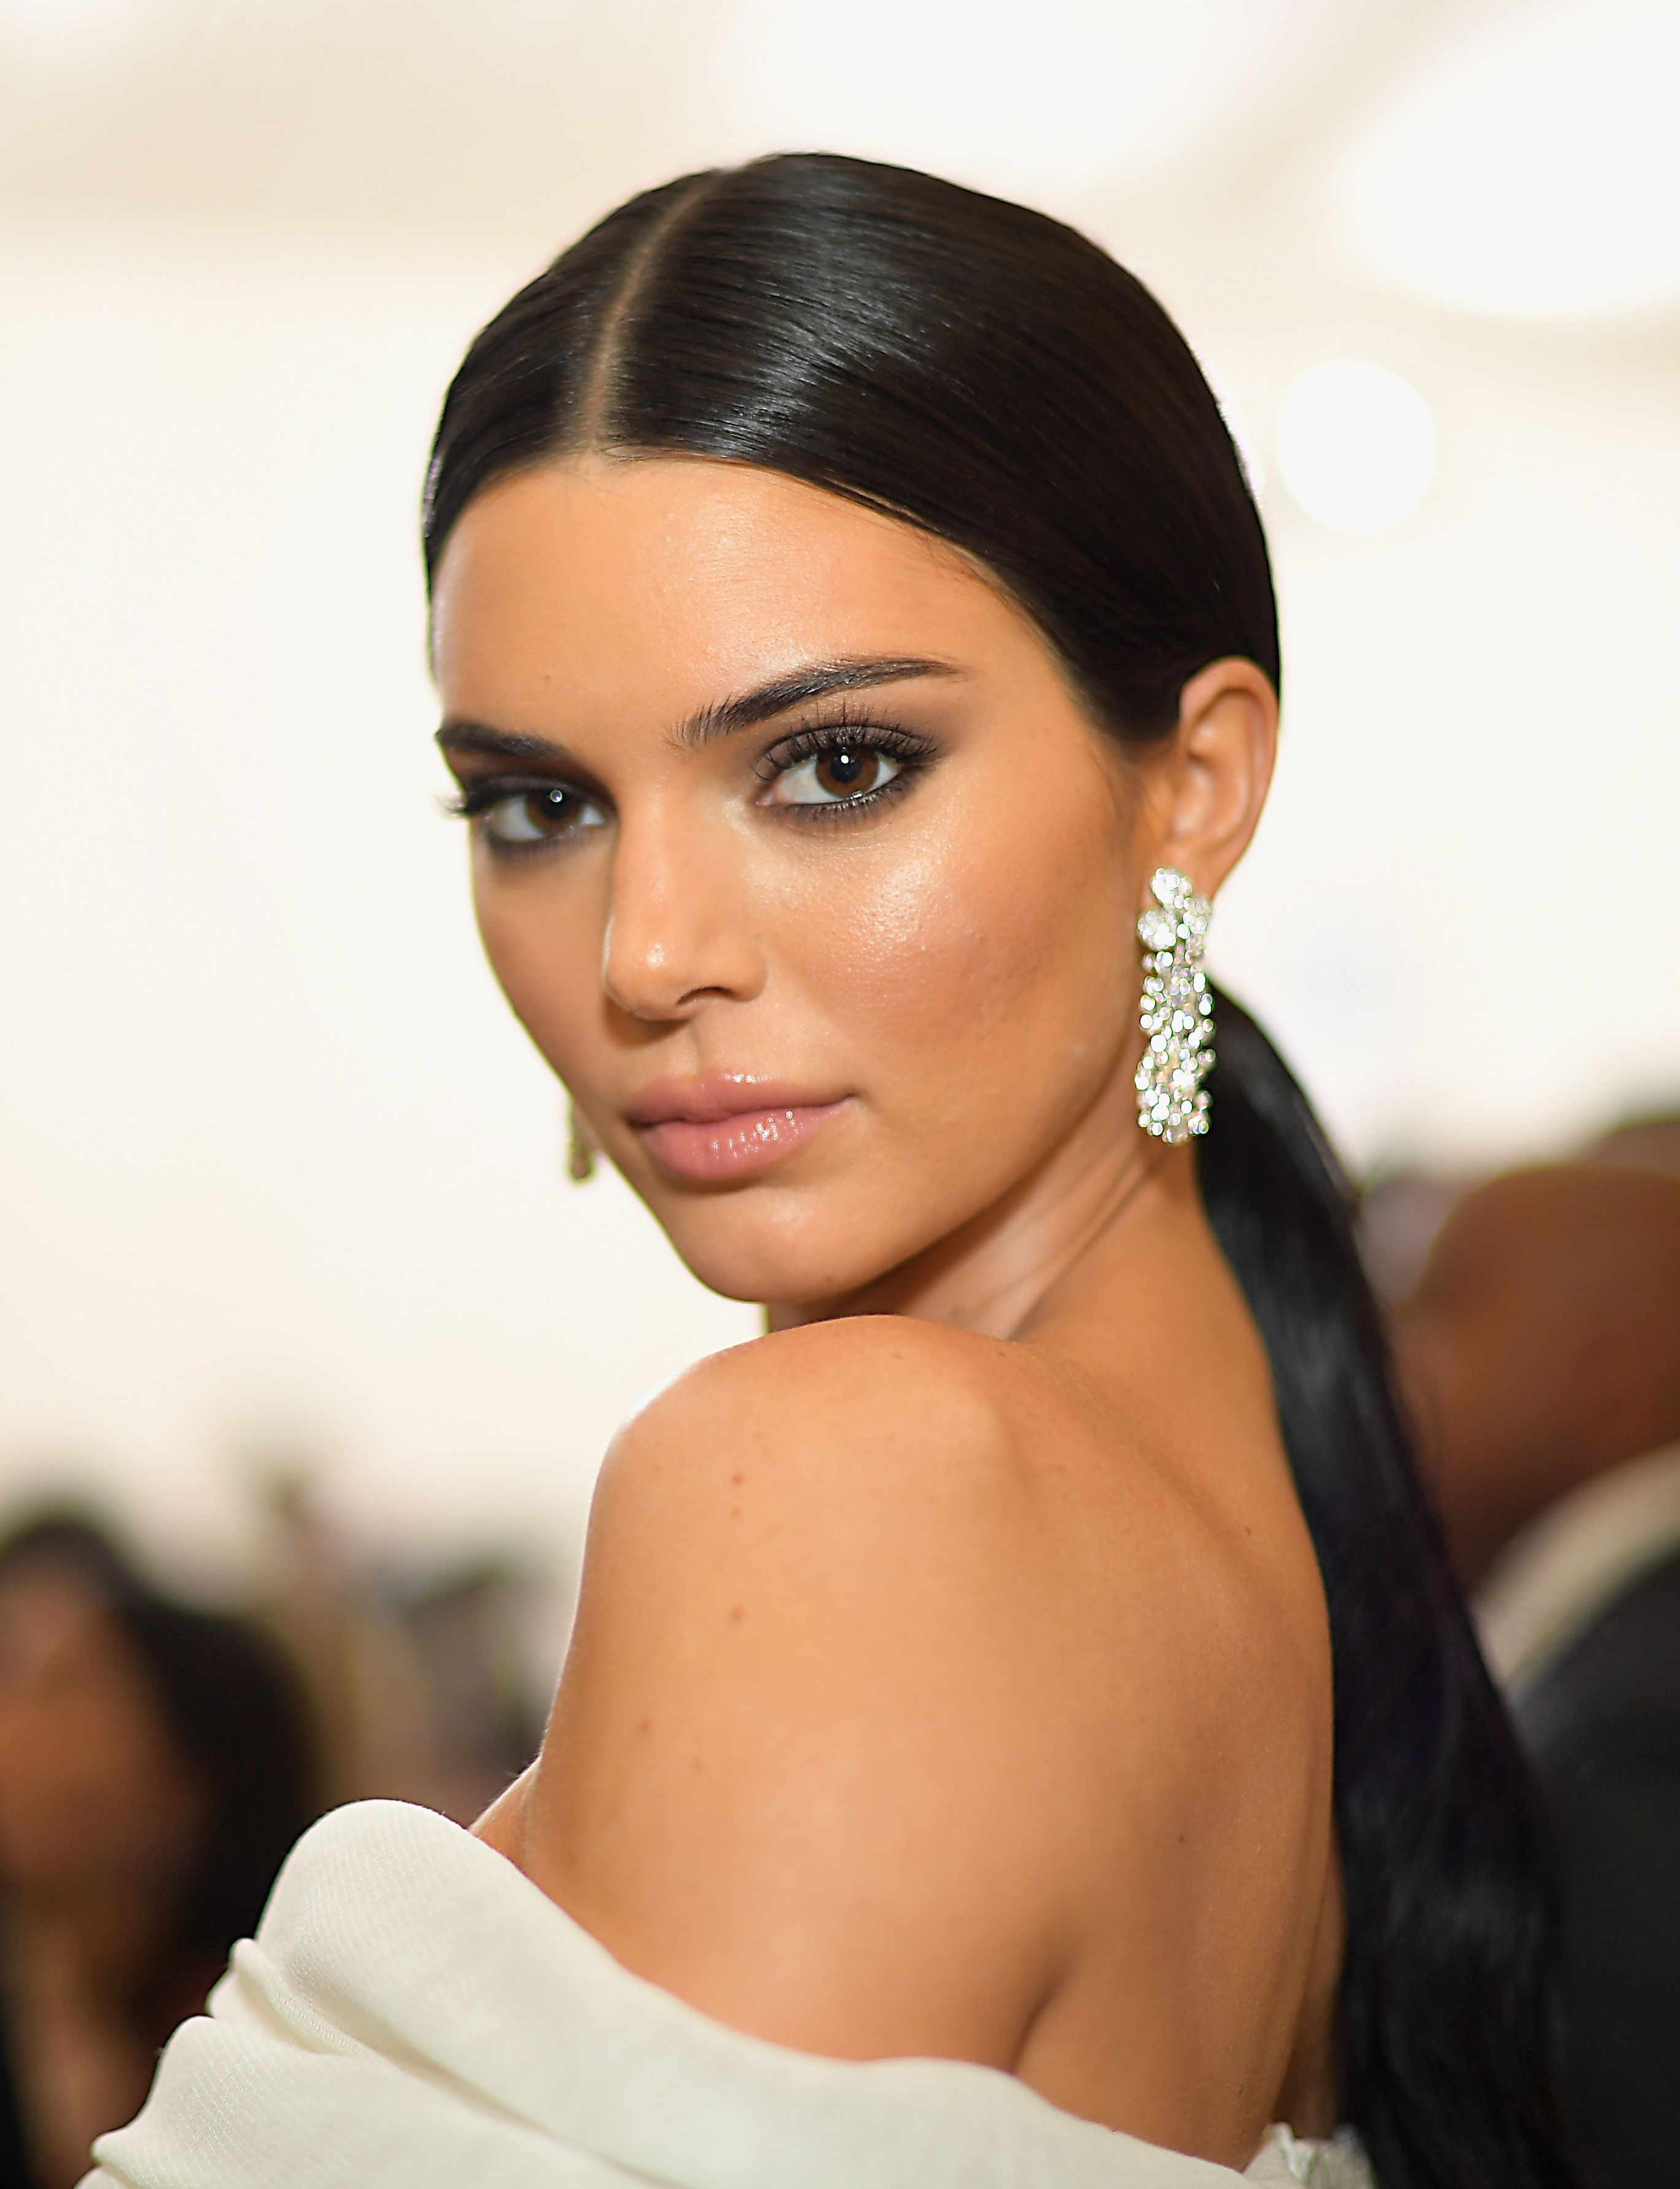 Kendall Jenner S Hair And Makeup Looks Kendall Jenner S Beauty Transformation